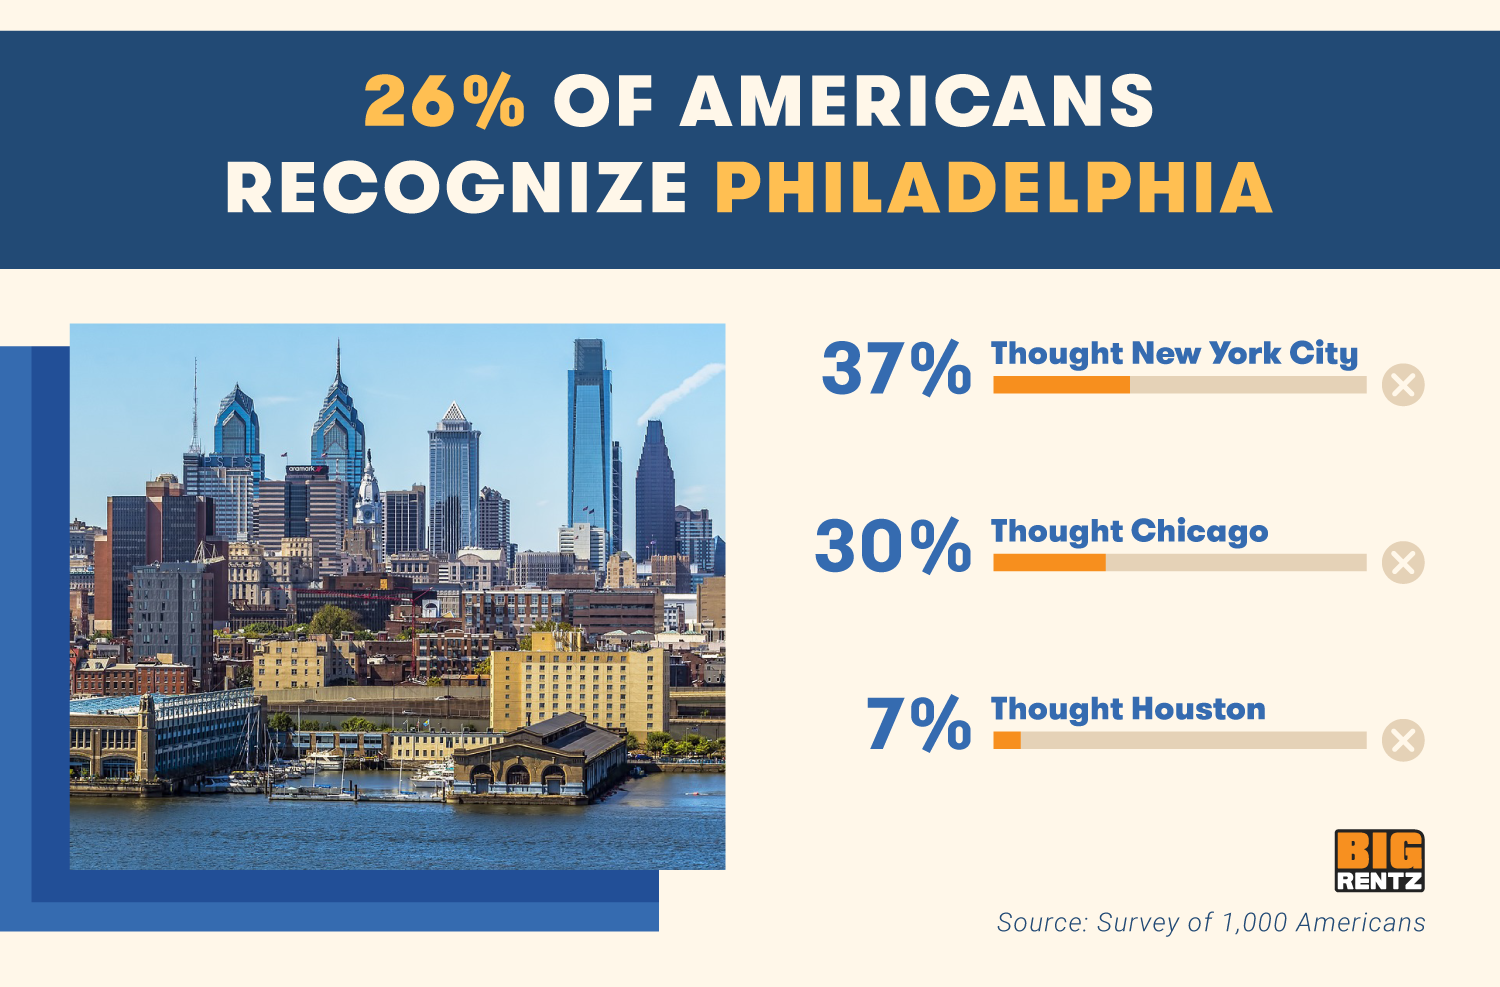 26% of Americans recognize Philadelphia. 37% though NYC, 30% thought Chicago, 7% thought Houston.